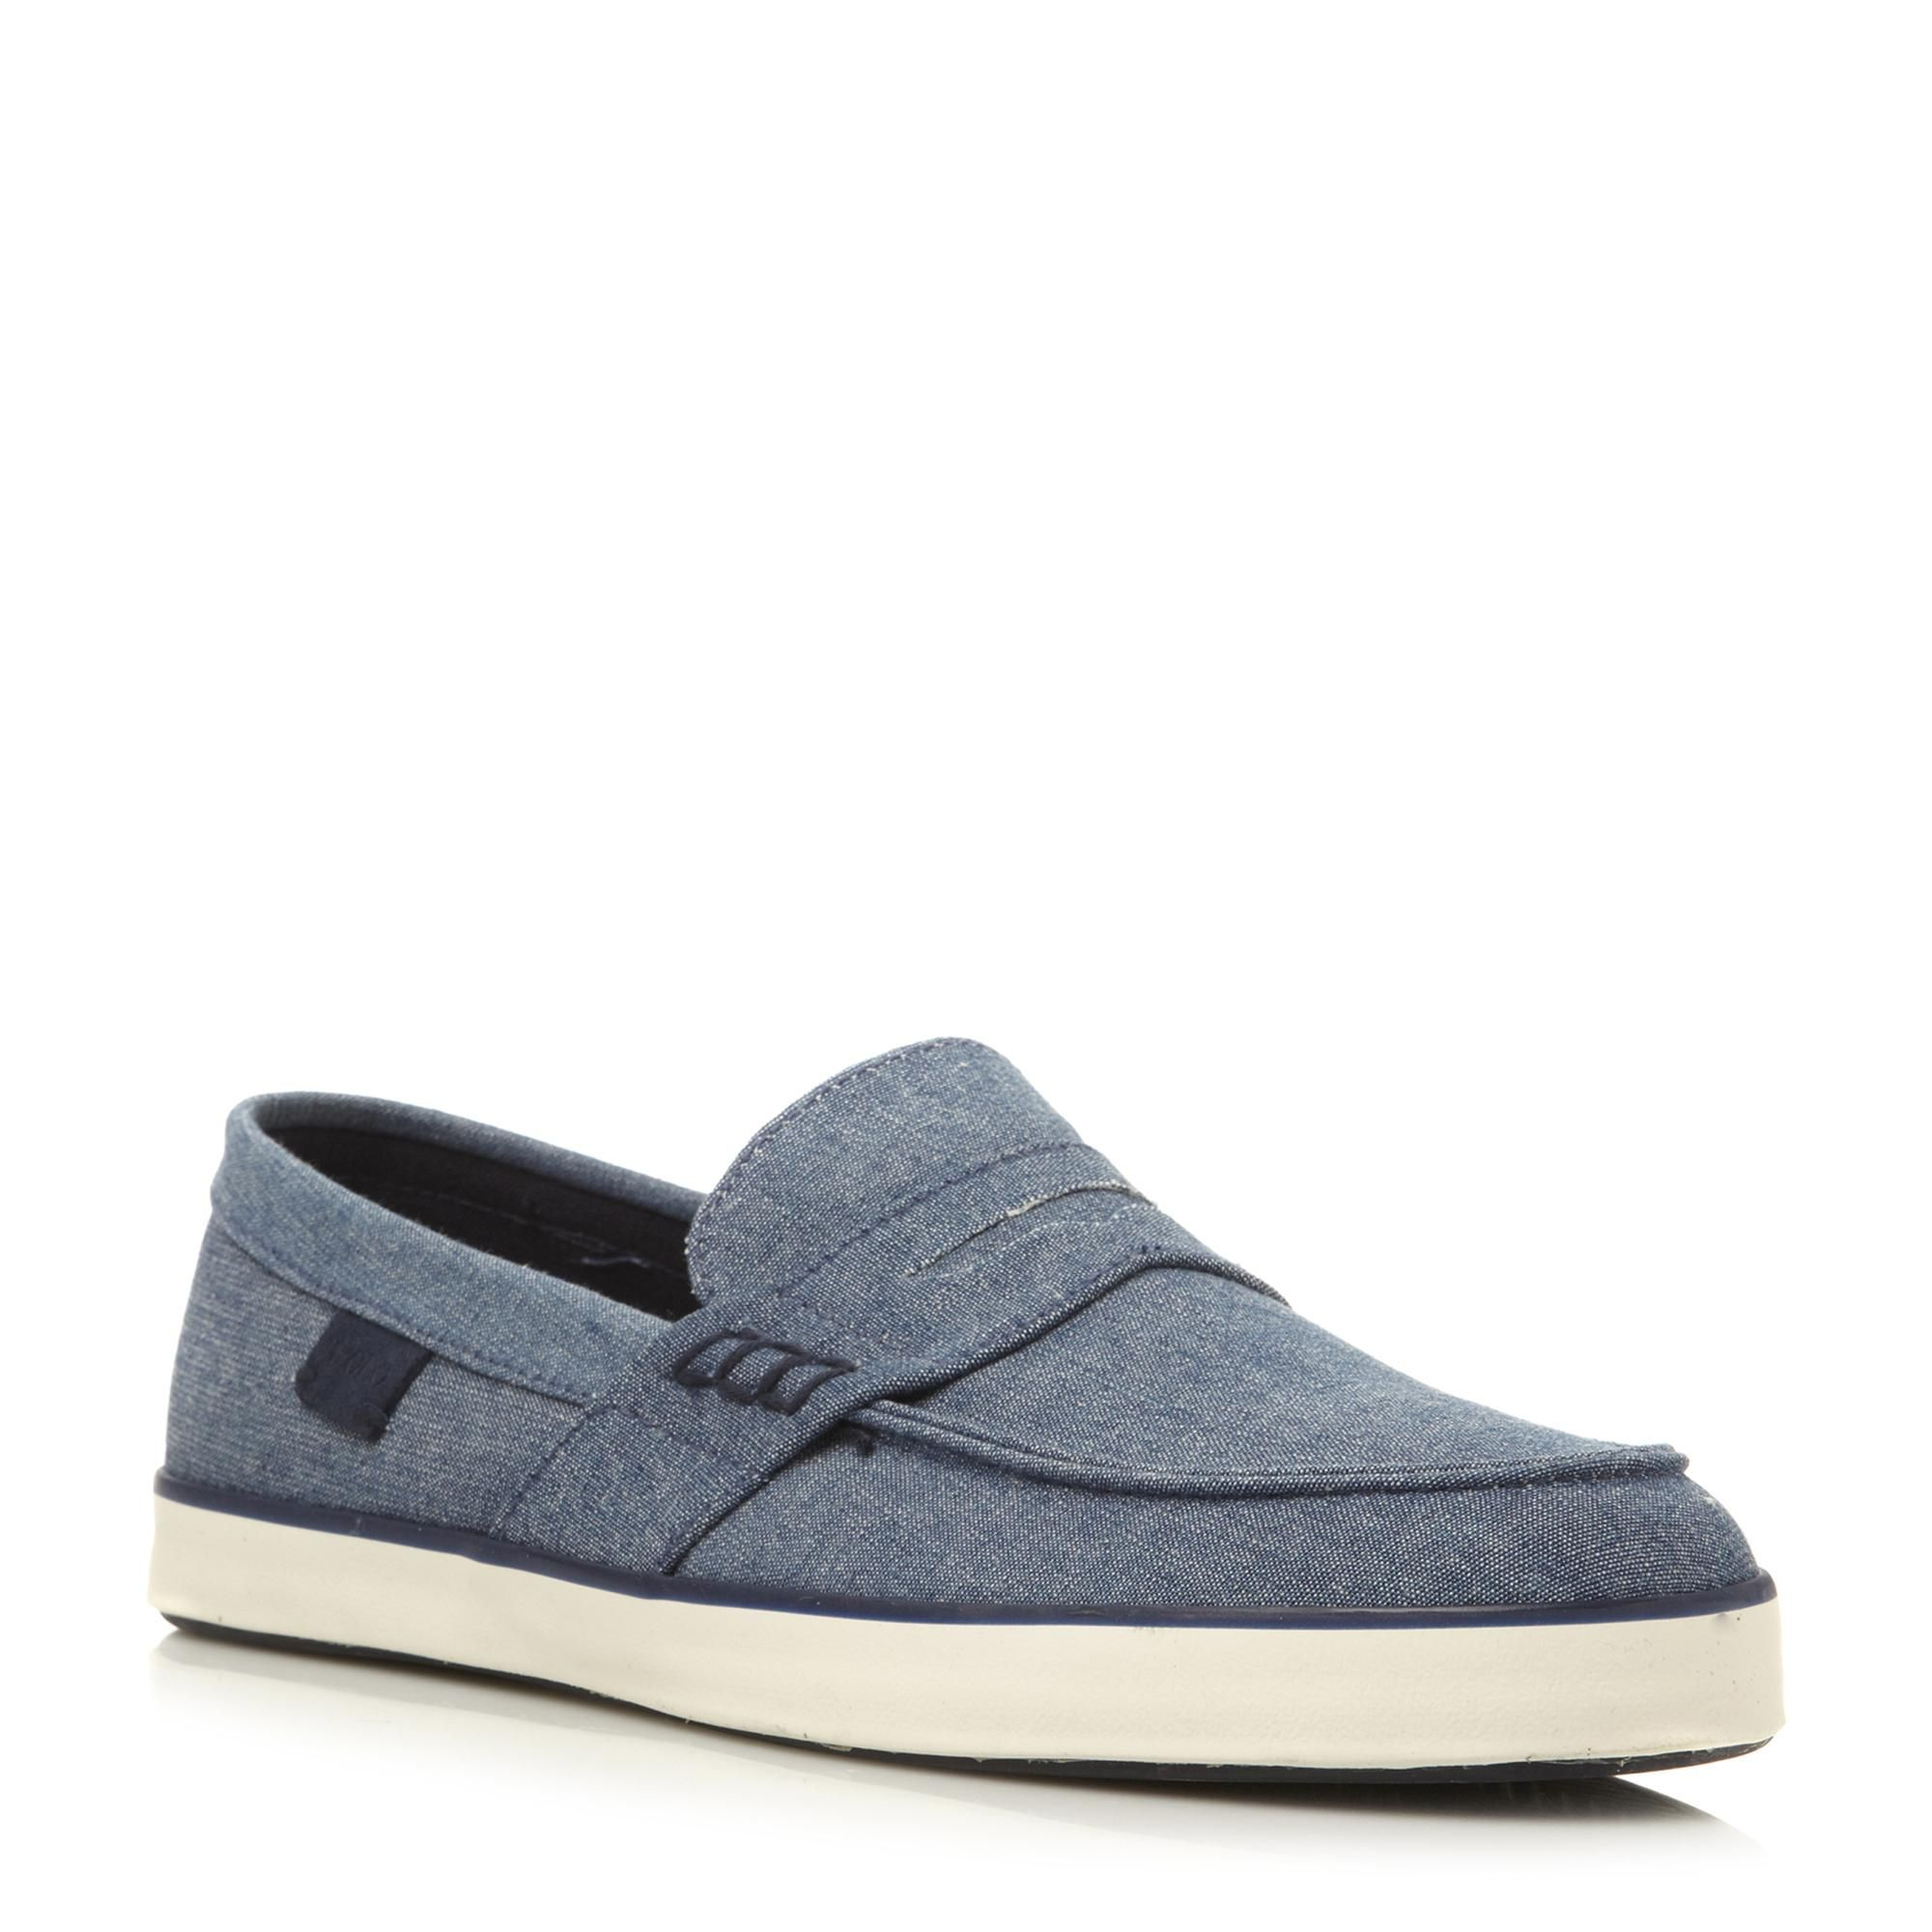 Womens Casual Shoes - Griffin Milly in Mid Blue Nubuck from Clarks shoes |  SanFrancisco wedding clothes | Pinterest | Casual shoes